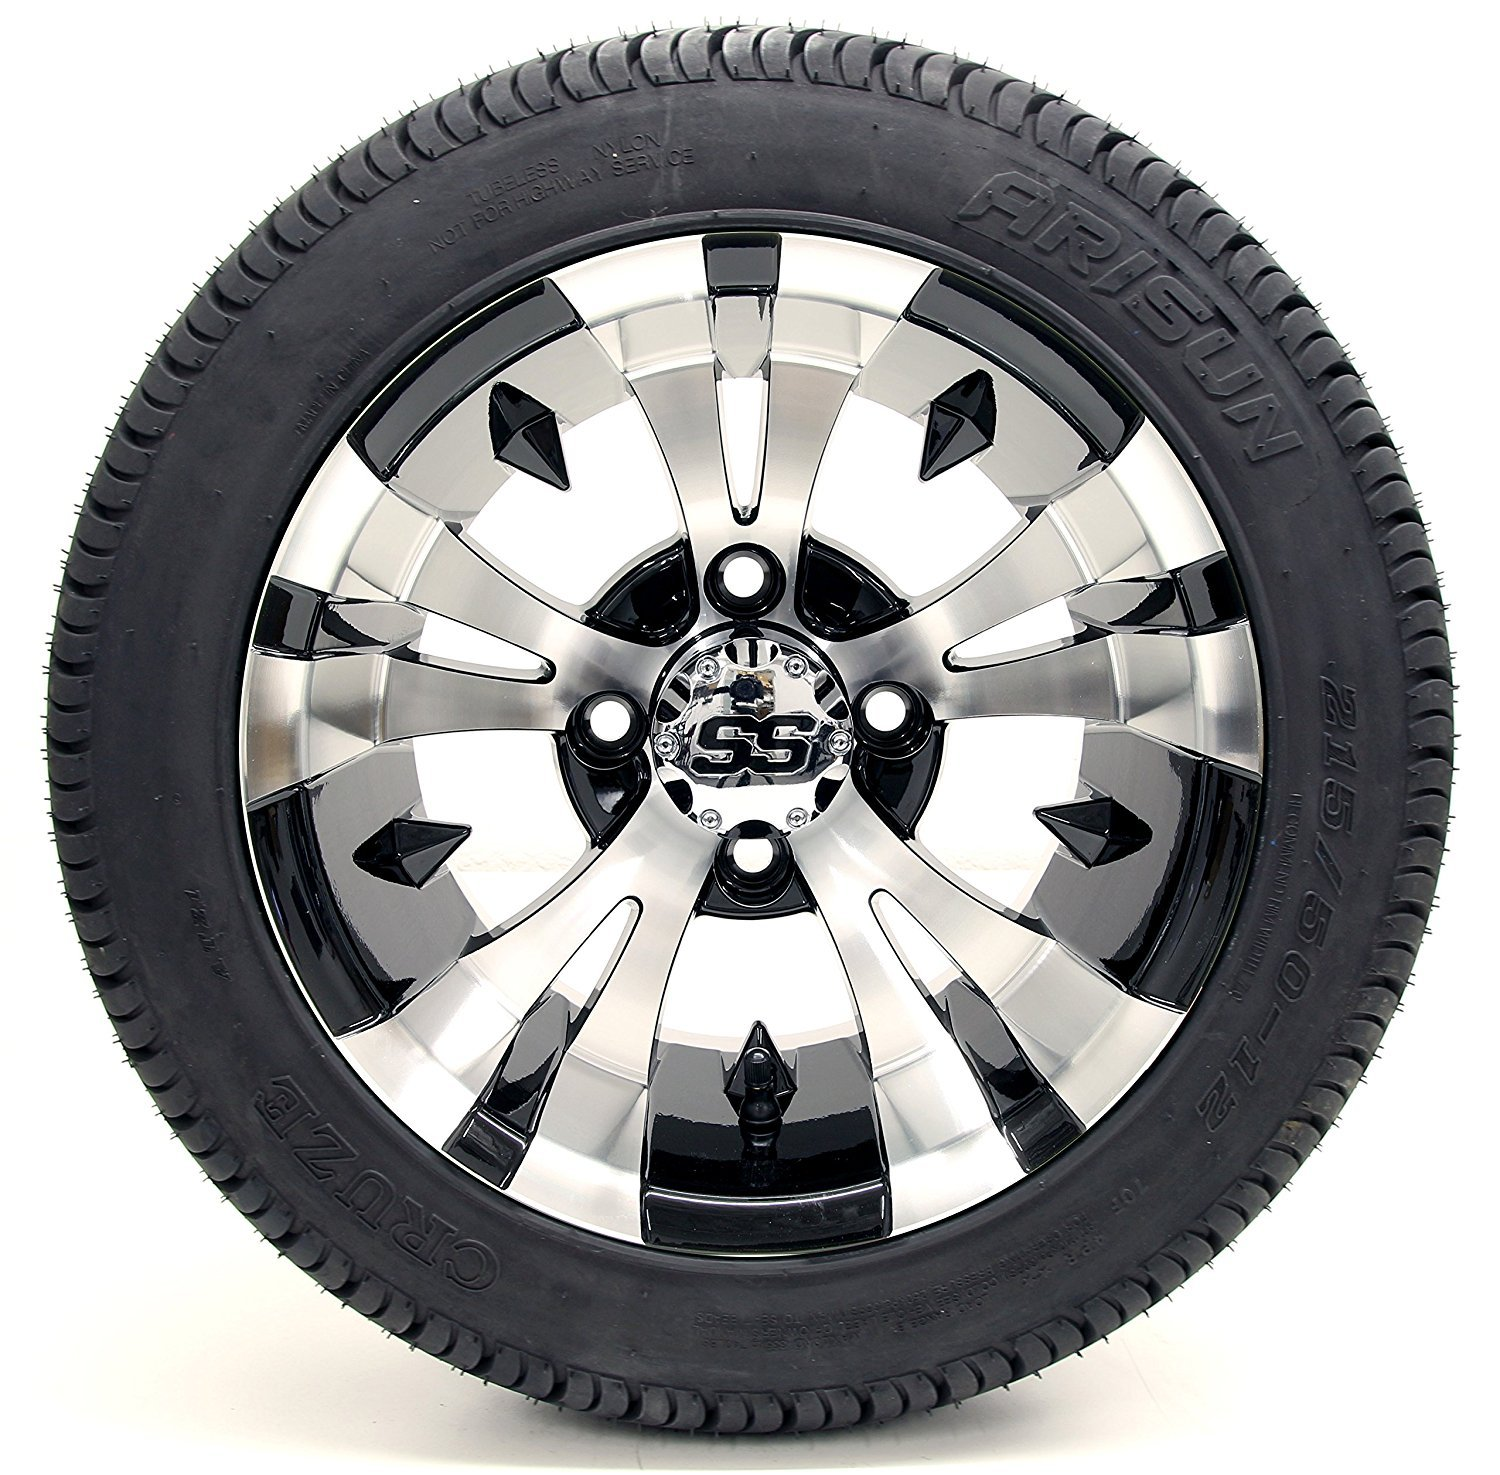 Golf Cart 12'' ''Vampire'' SS Gloss Black and Machined 215/35-12 or 215/50-12 DOT Golf Cart Tire Combo - - Set of 4 (215/50-12, Metric Lugs)